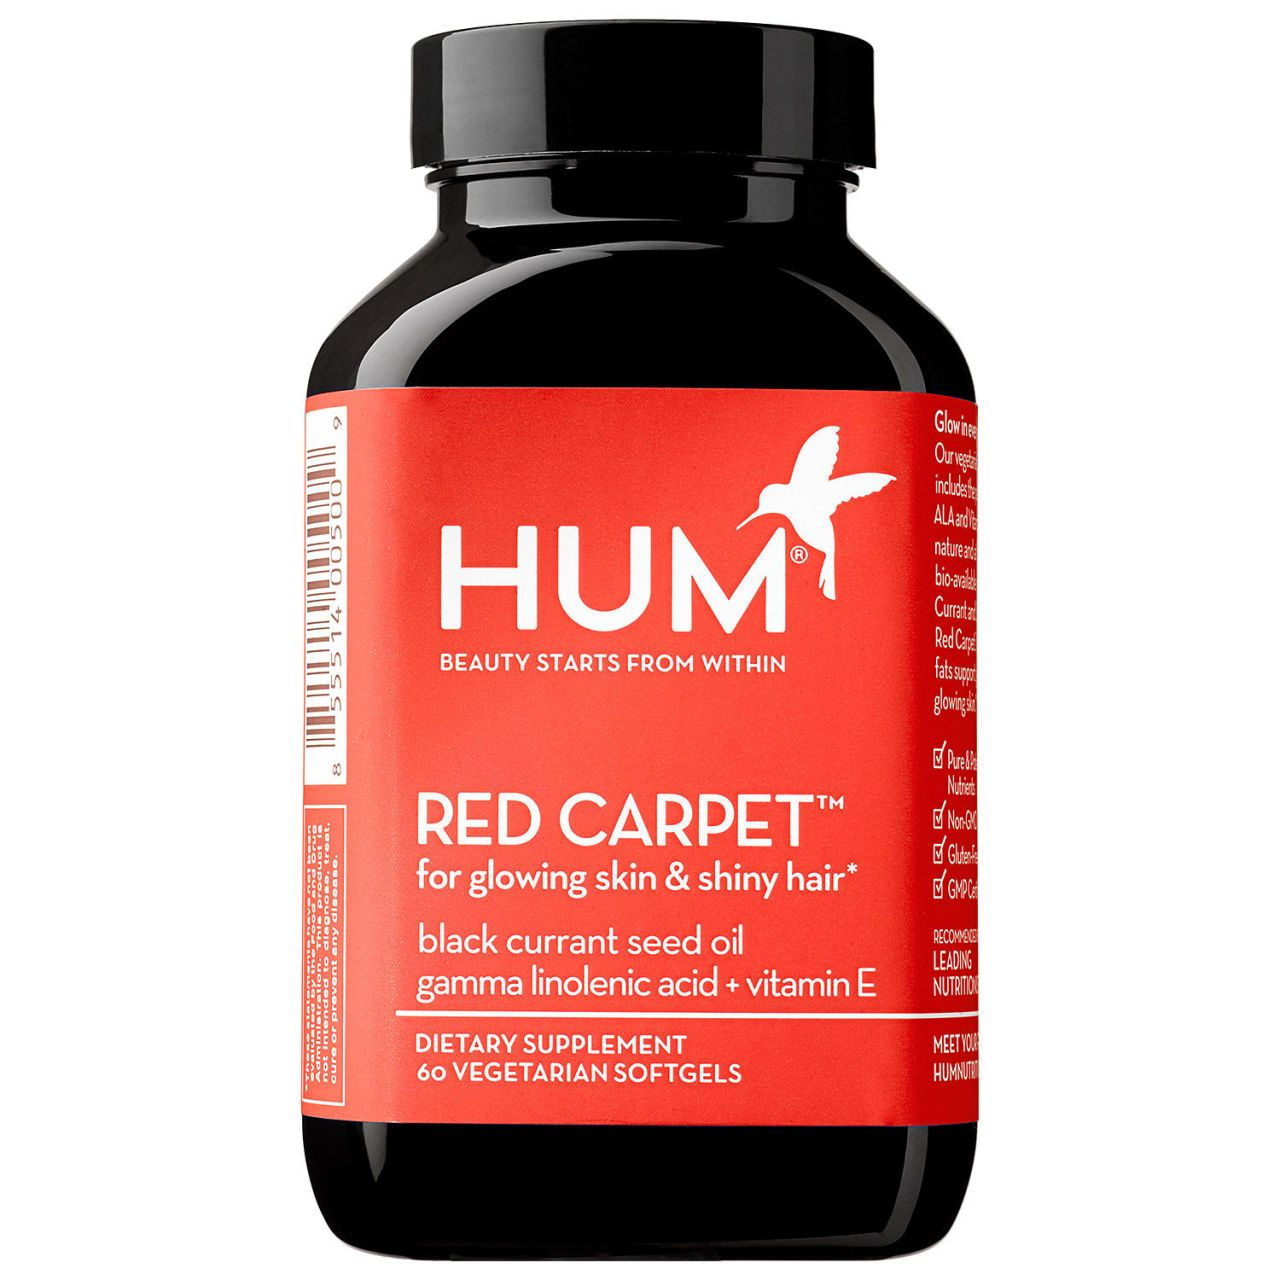 FastActing Hair Growth Vitamins and Supplements That Really Work